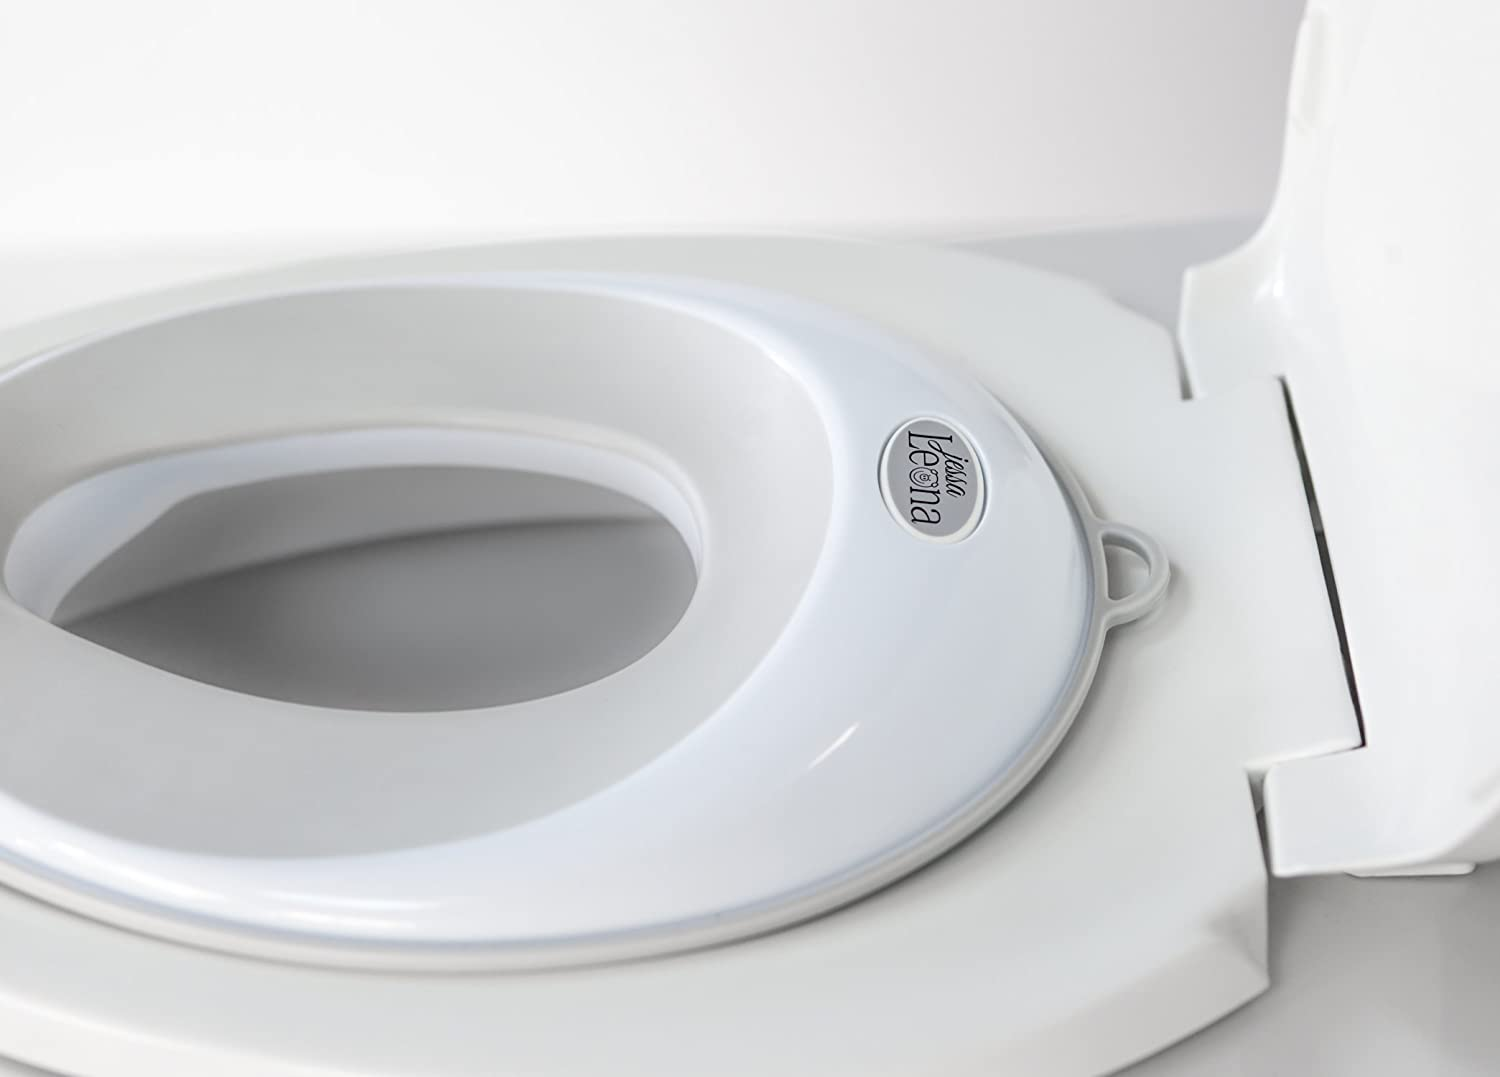 Potty Training Seat For Boys and Girls Secure Non-Slip Surface With Convenient Storage Hook Toddlers Potty Ring For Round And Oval Toilets